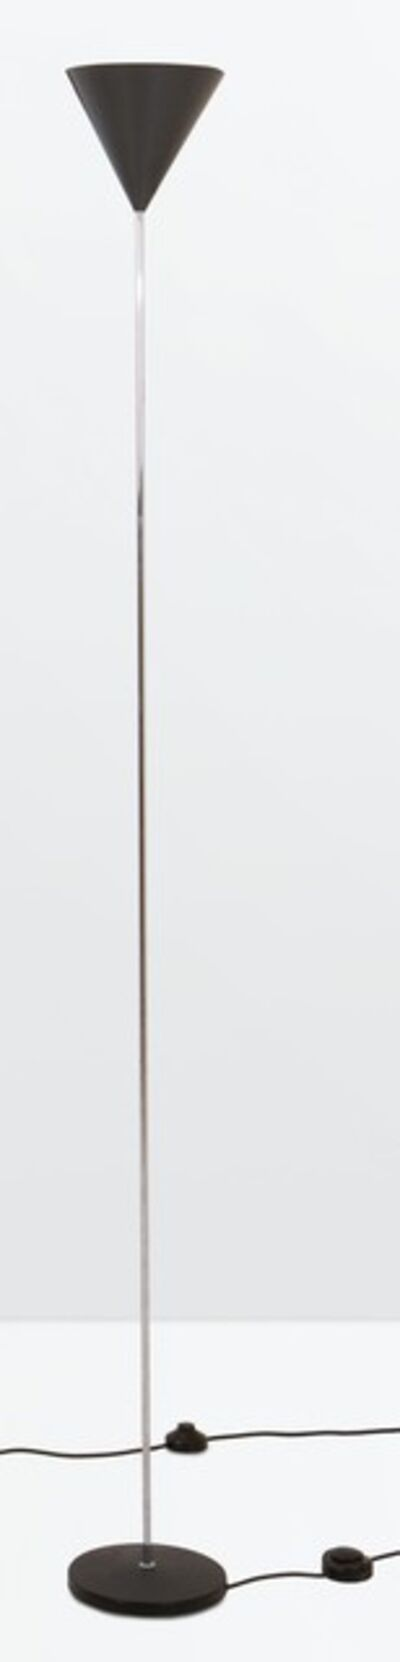 Luigi Caccia Dominioni, 'an LTE 5 Imbuto floor lamp in metal, nickeled brass and varnished aluminum', 1953